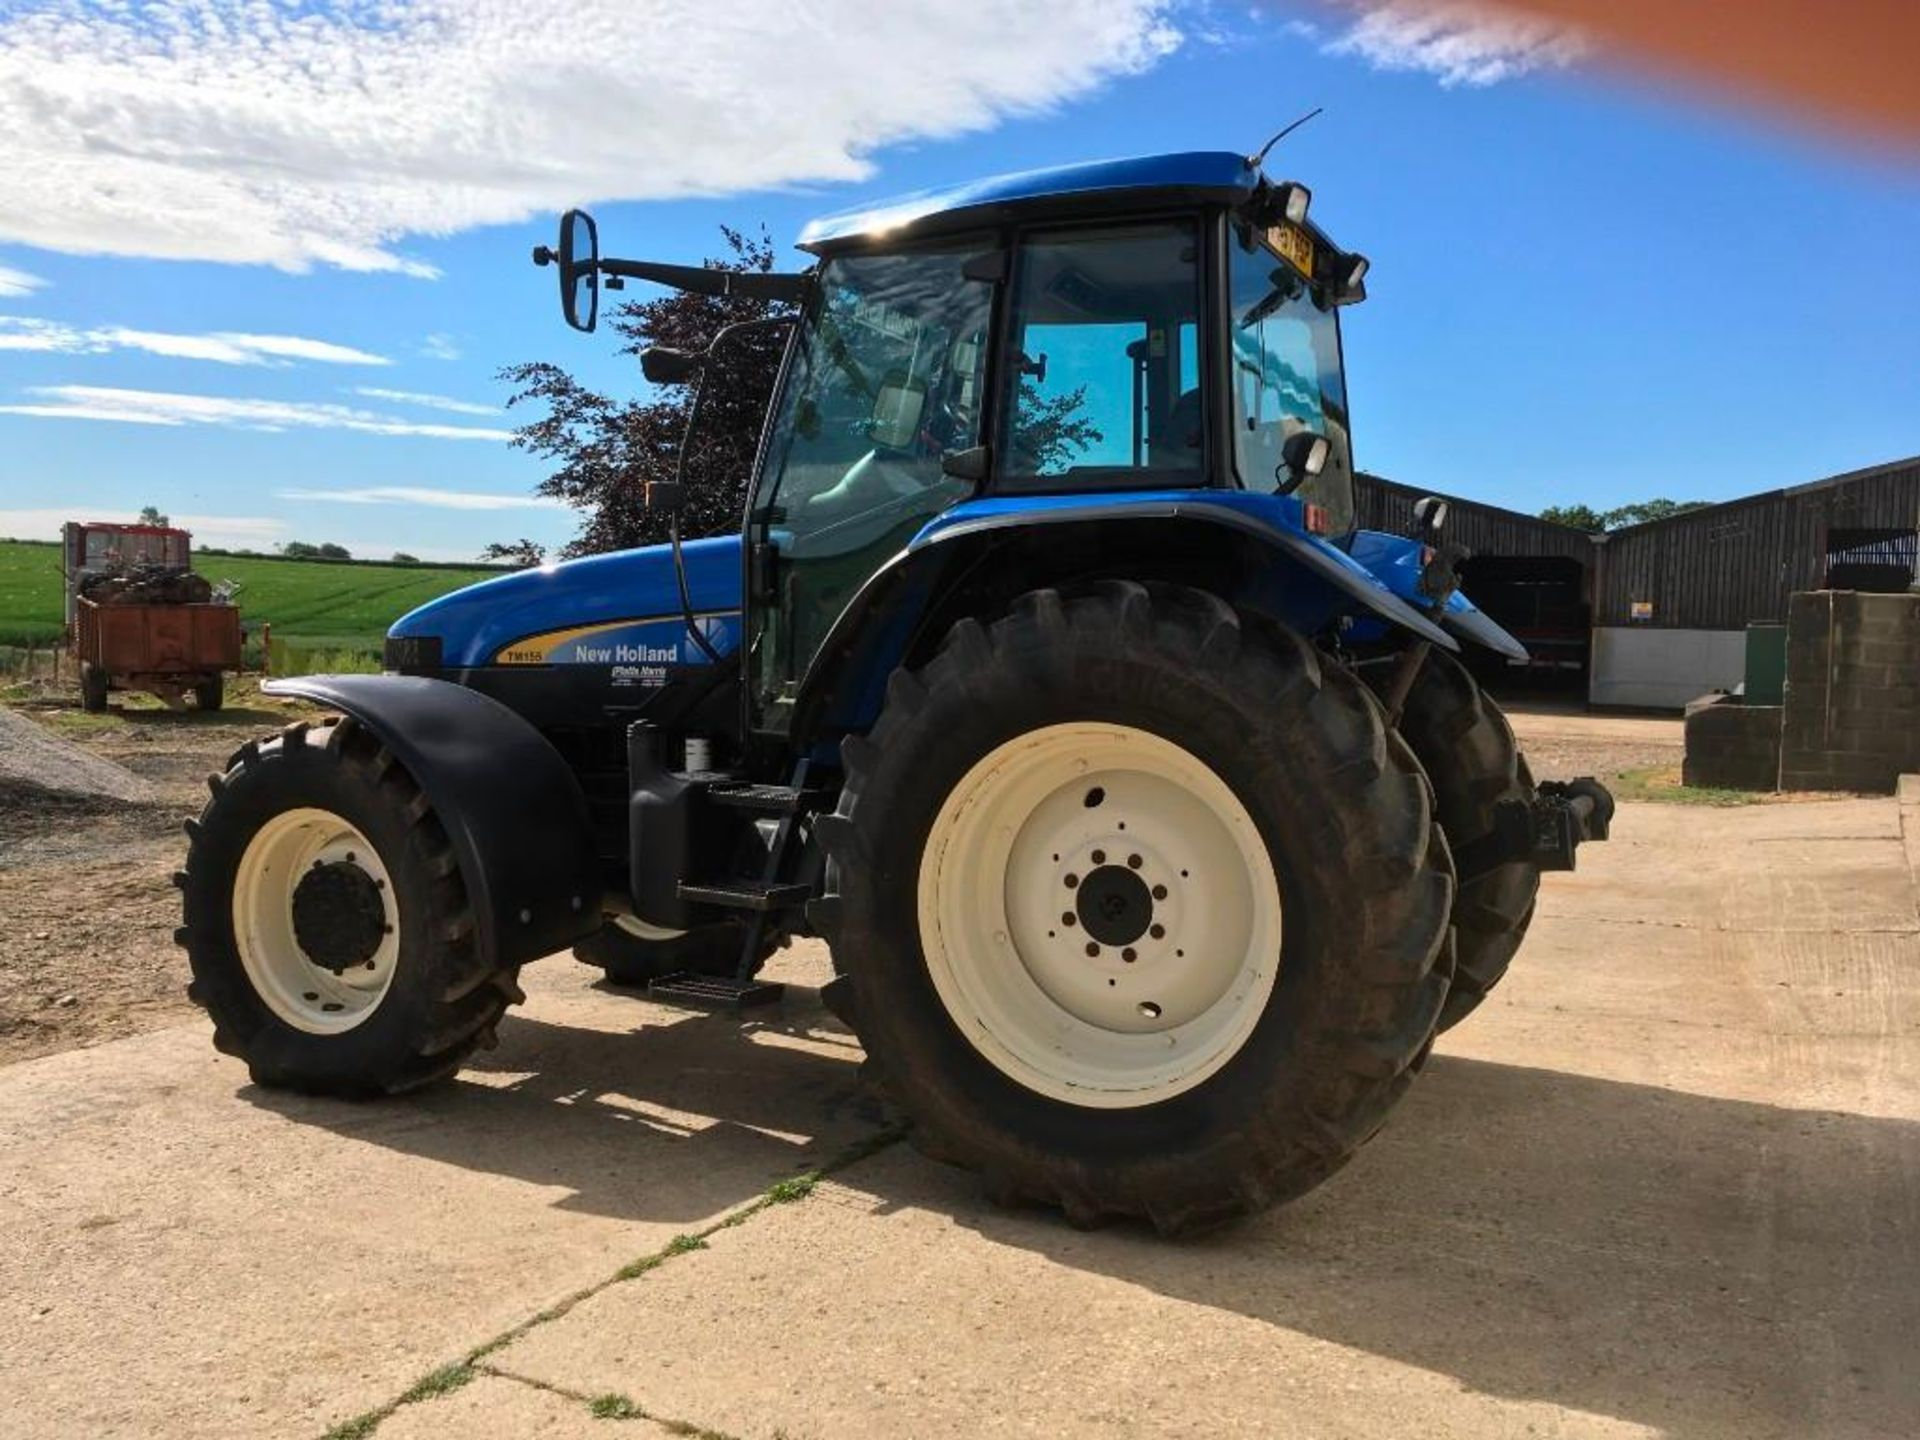 2007 New Holland TM155 tractor with range command gear box, 4 spool valves, push out pick up hitch, - Image 8 of 12